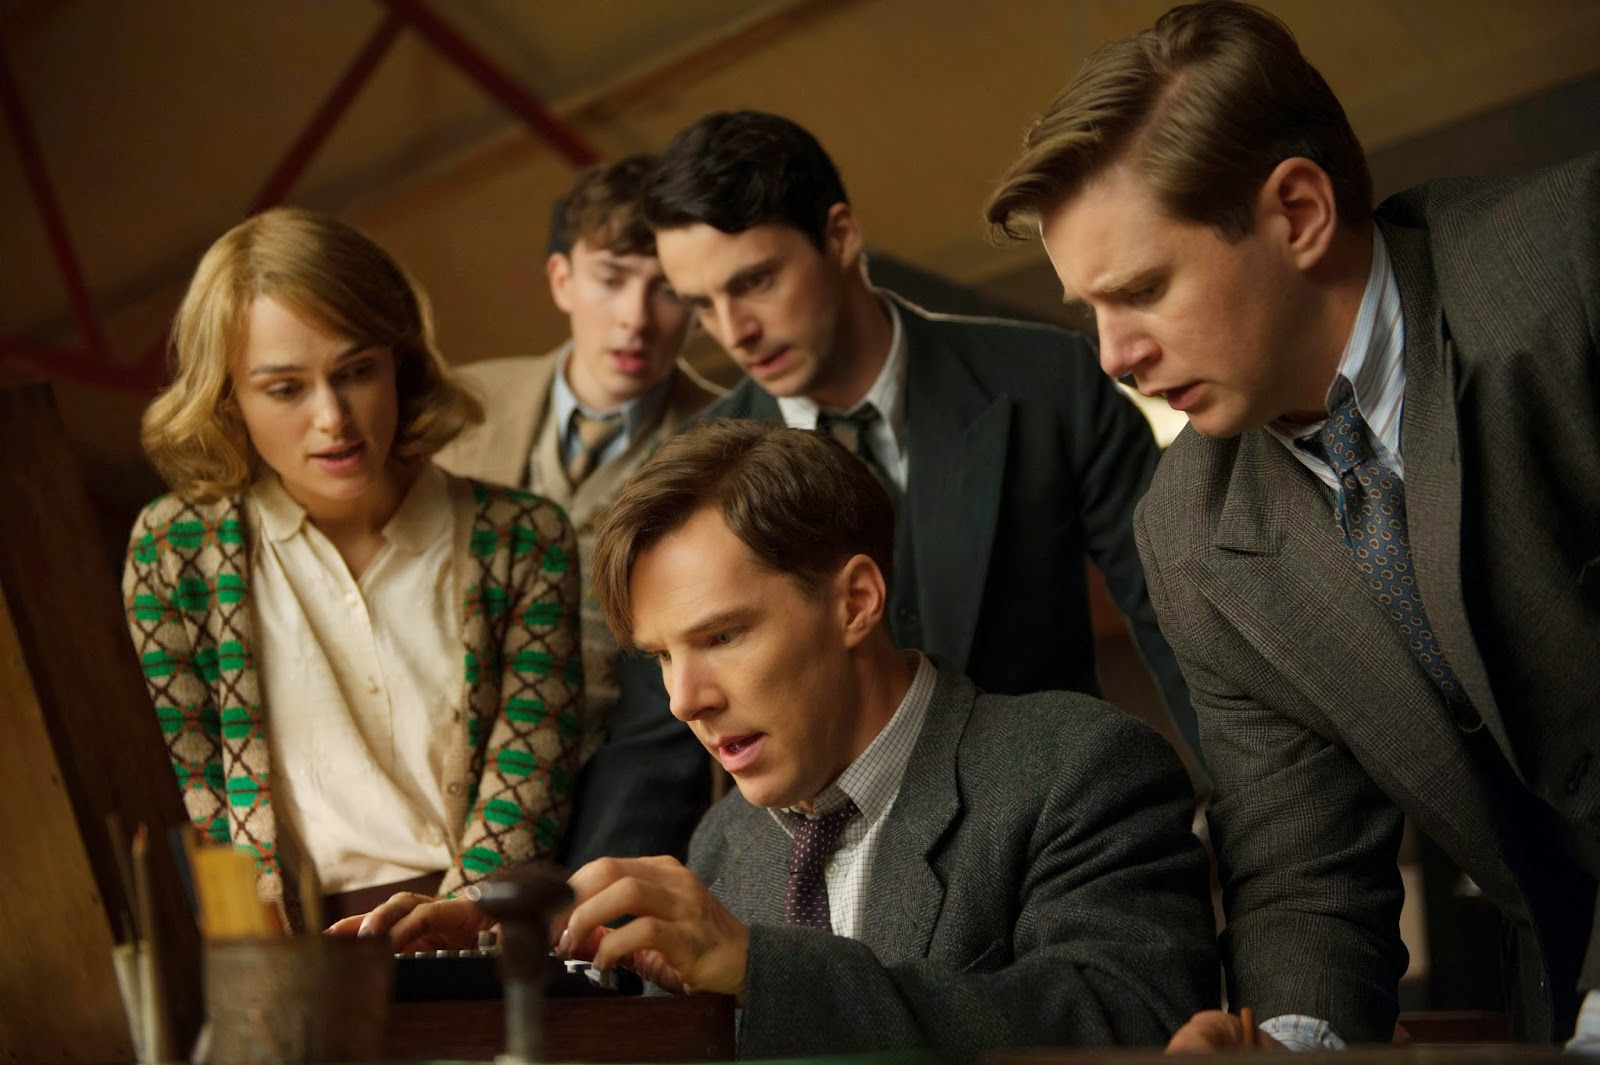 The Imitation Game - Keira Knightley (Joan Clarke), Matthew Beard (Peter Hilton), Matthew Goode (Hugh Alexander), Benedict Cumberbatch (Alan Turing) y Allen Leech (John Cairncross)